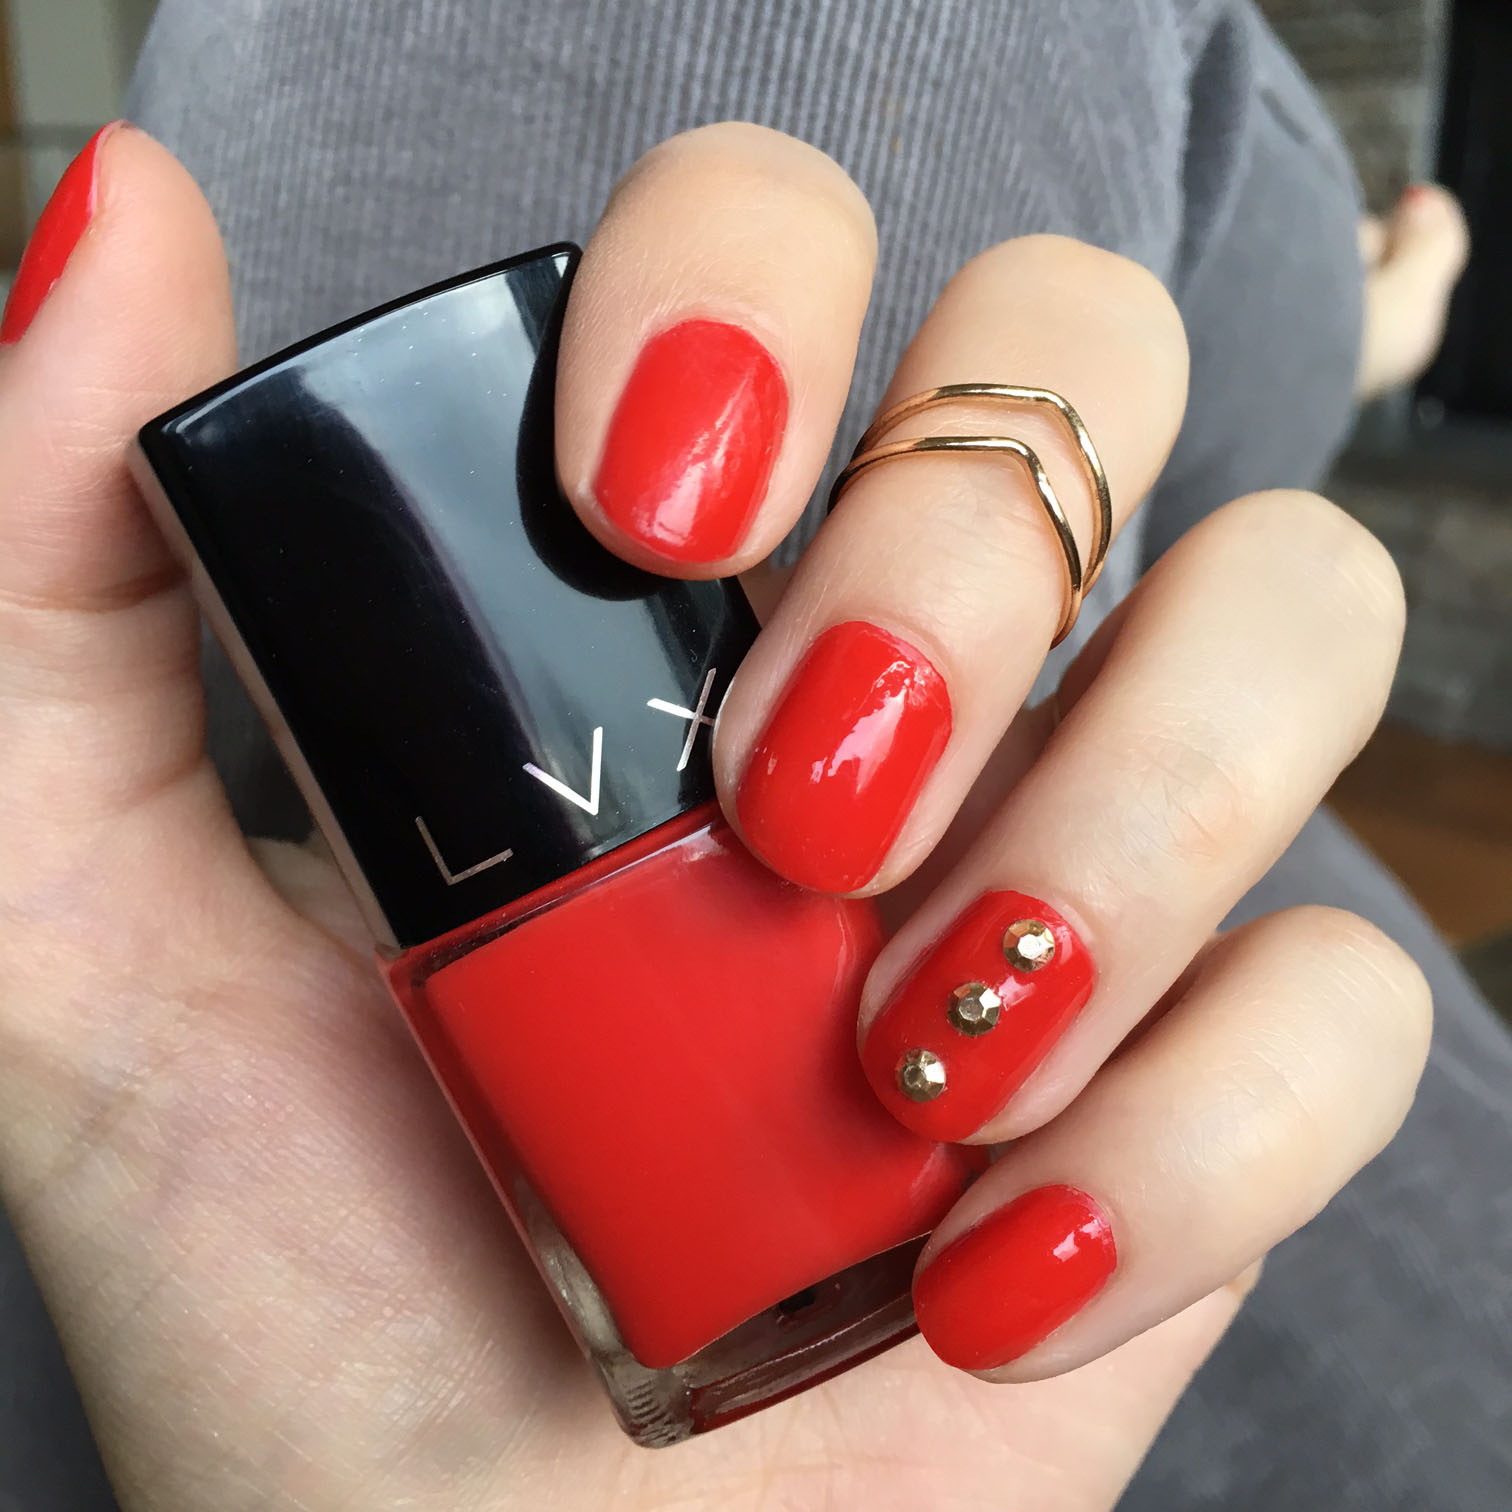 LVX True Love Red polish